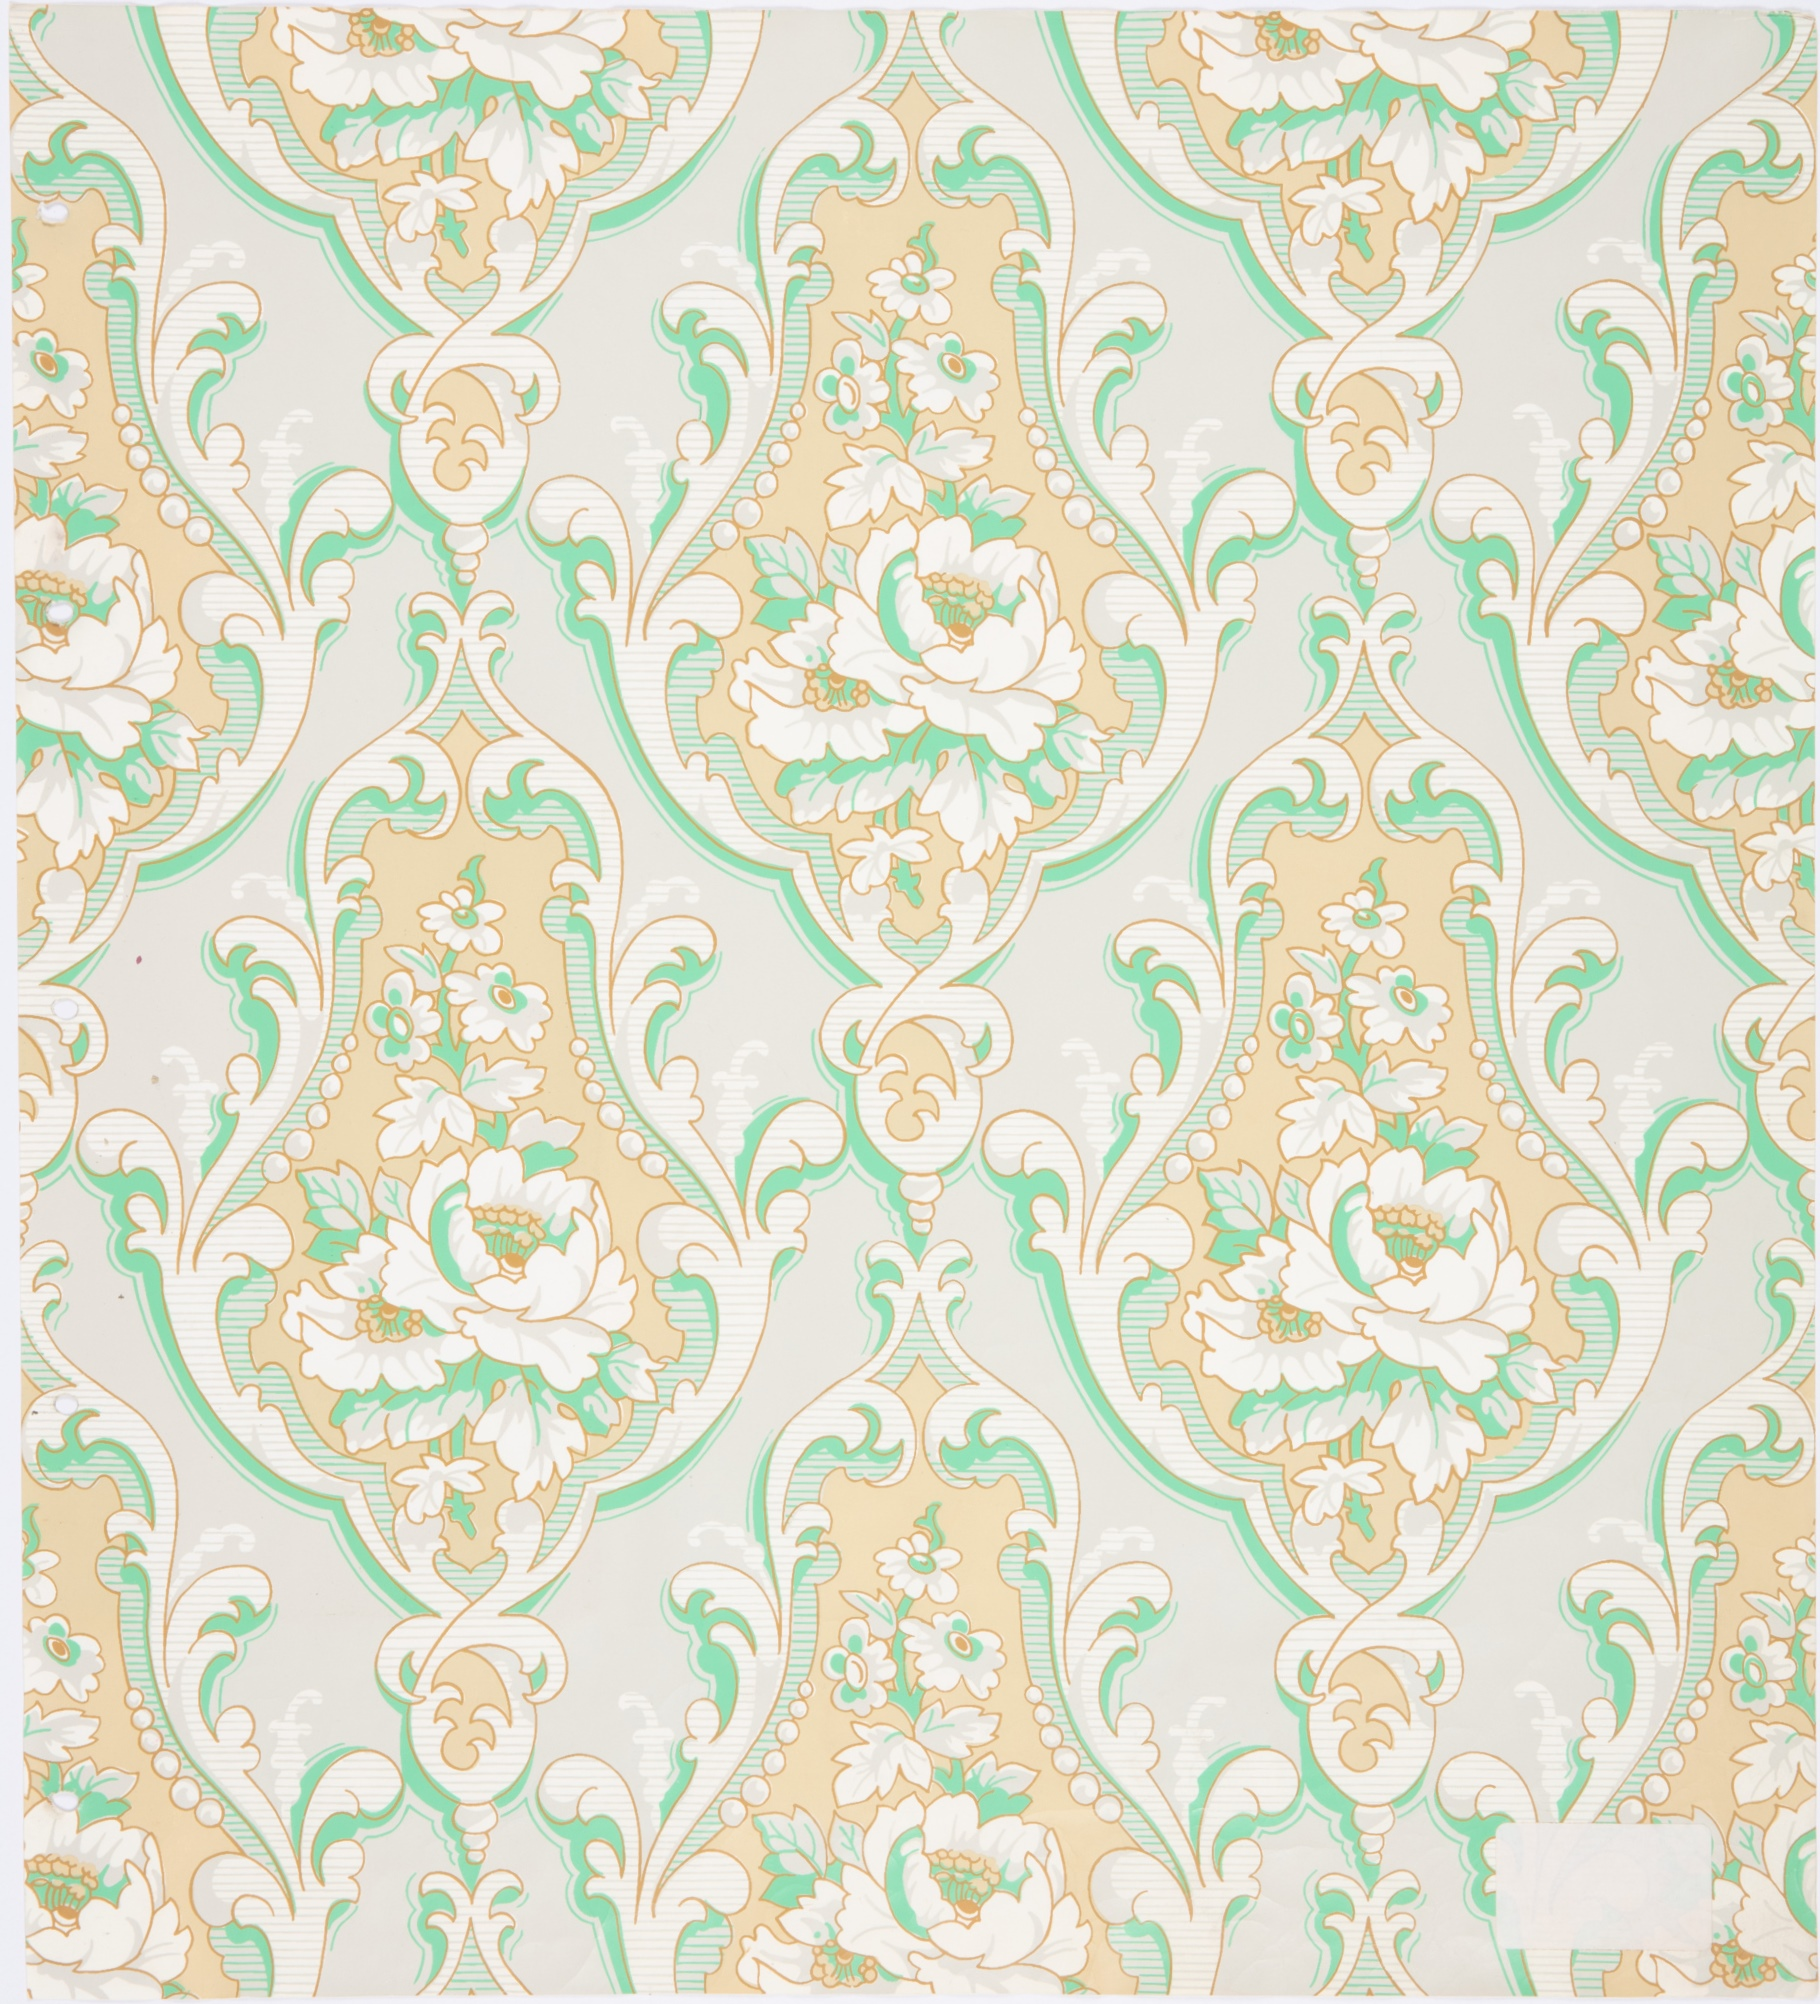 Wallpaper recreated for upstairs sitting room at Vaucluse House, Sydney, copied form paper found at Harrisford House, Parramatta